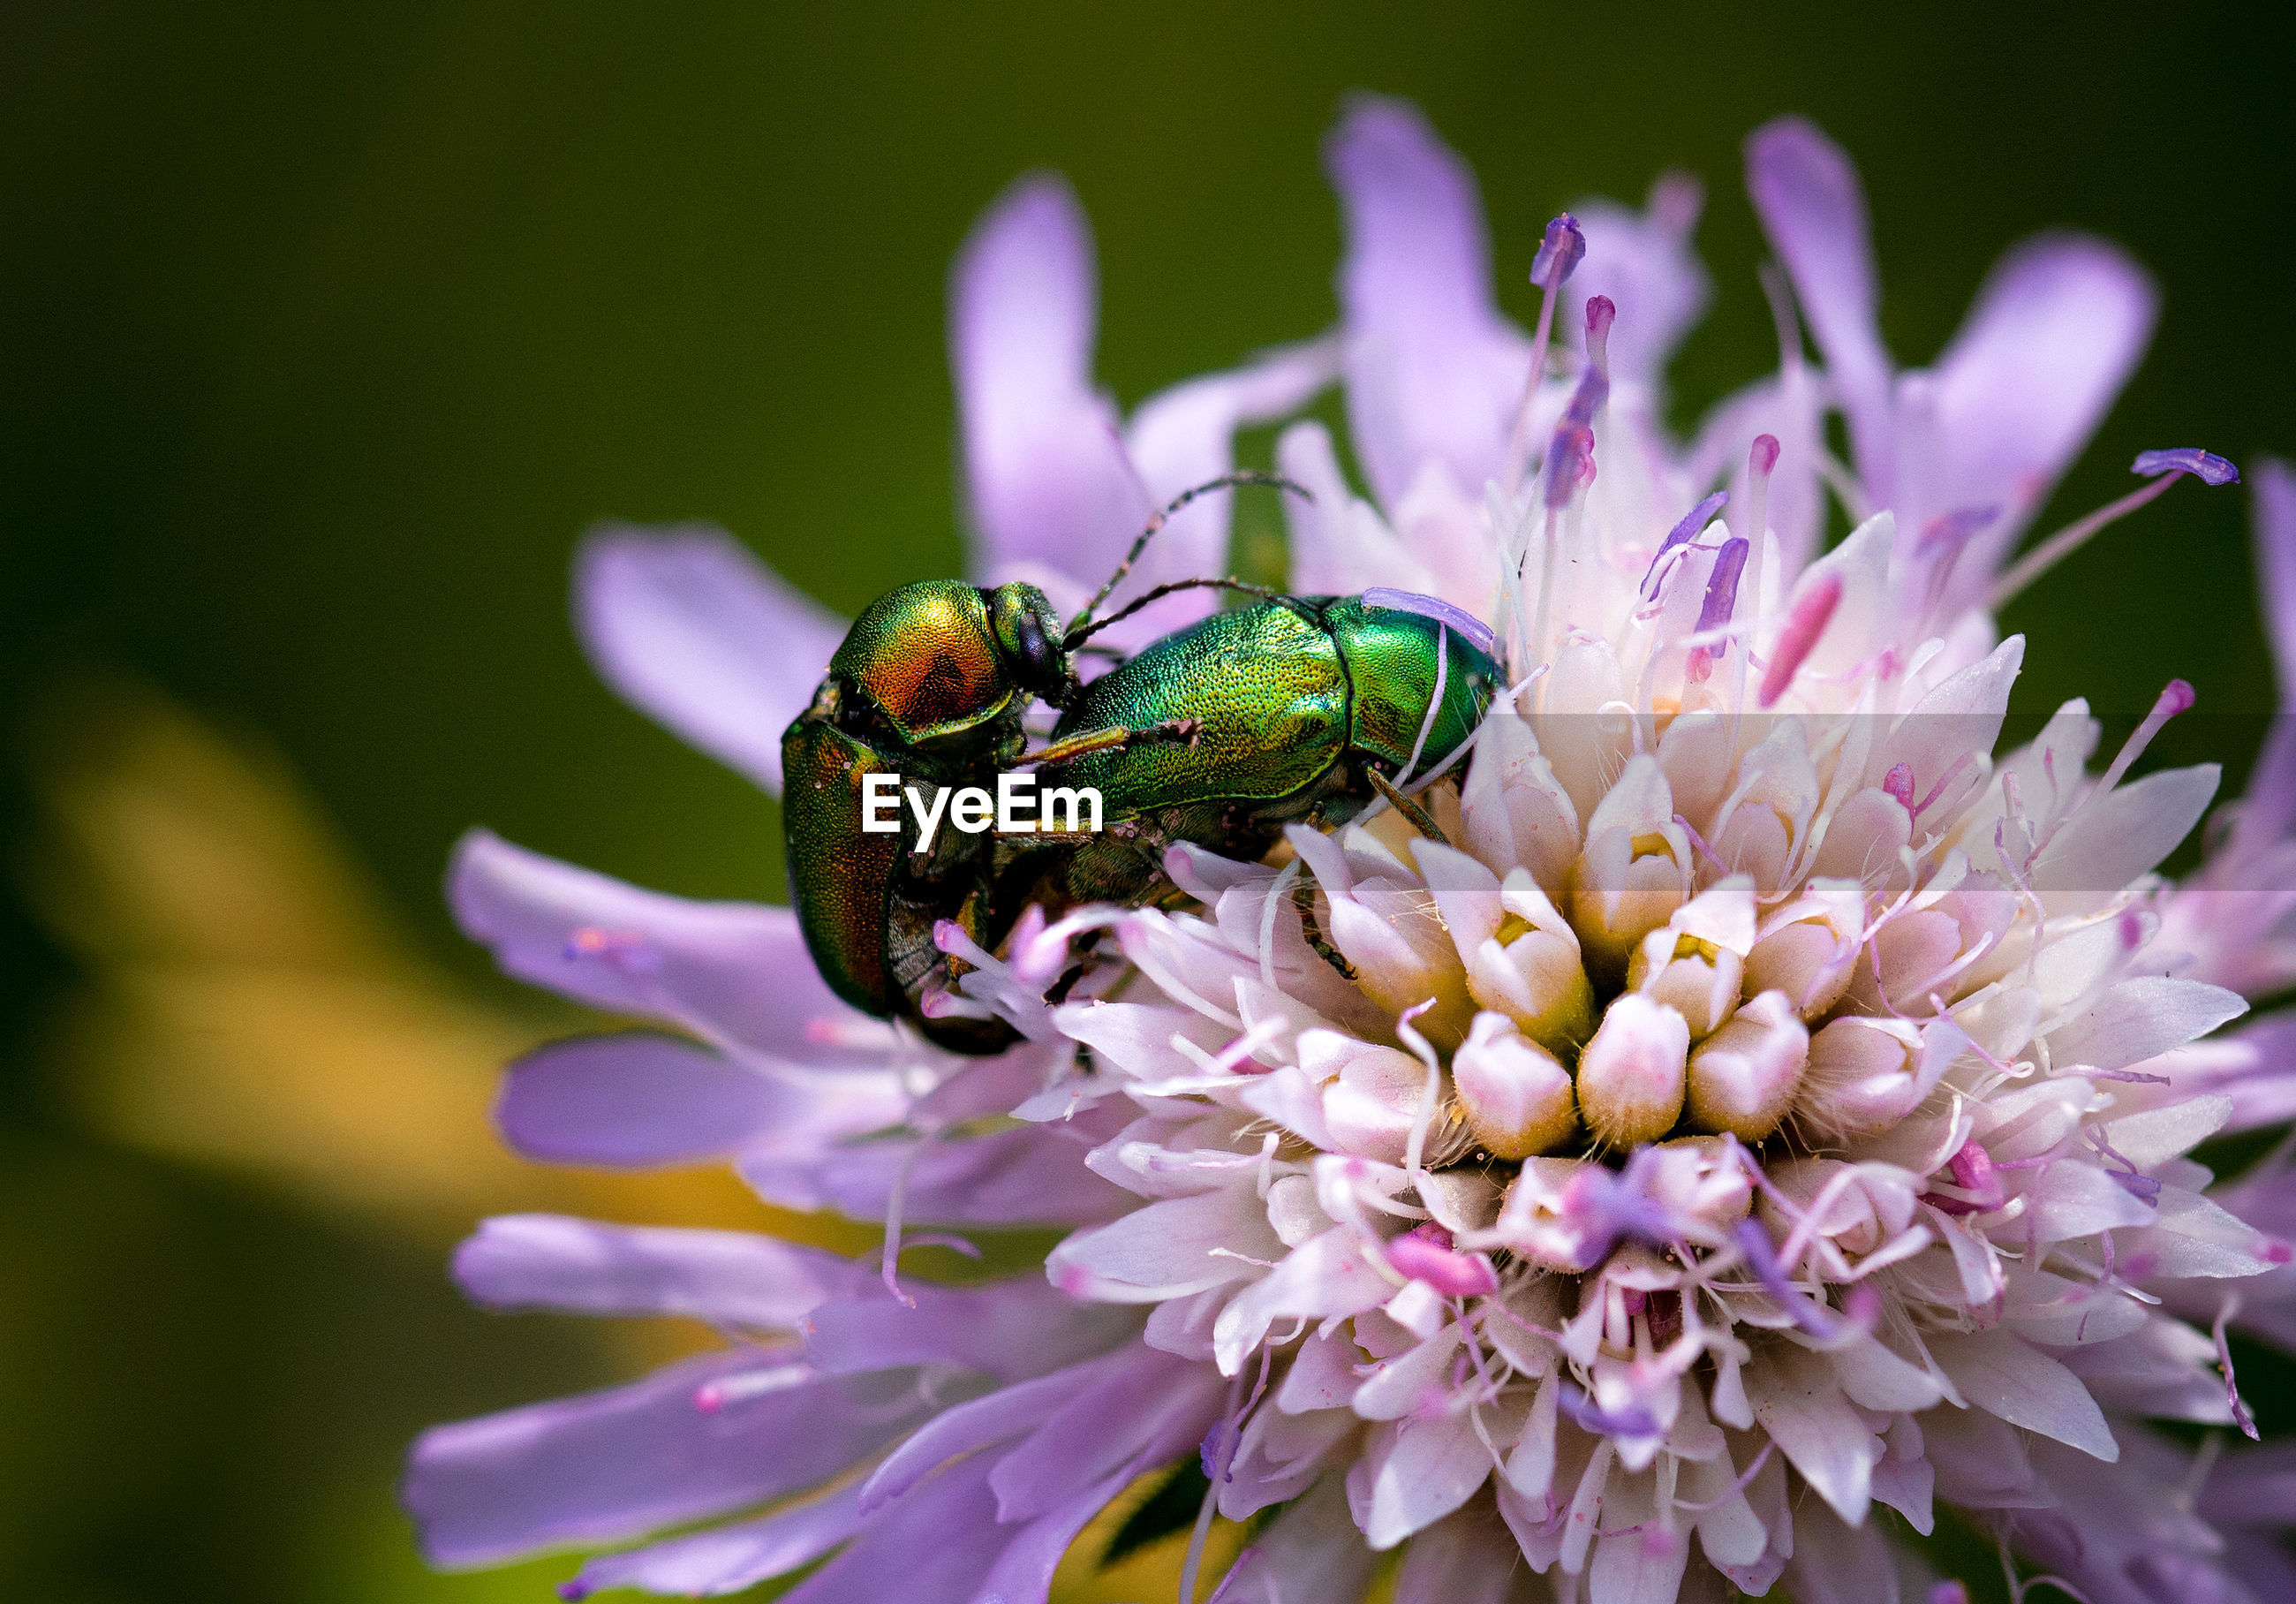 flower, flowering plant, petal, vulnerability, plant, fragility, beauty in nature, animal, animal themes, freshness, insect, invertebrate, flower head, close-up, growth, one animal, animal wildlife, animals in the wild, inflorescence, pink color, pollination, no people, purple, pollen